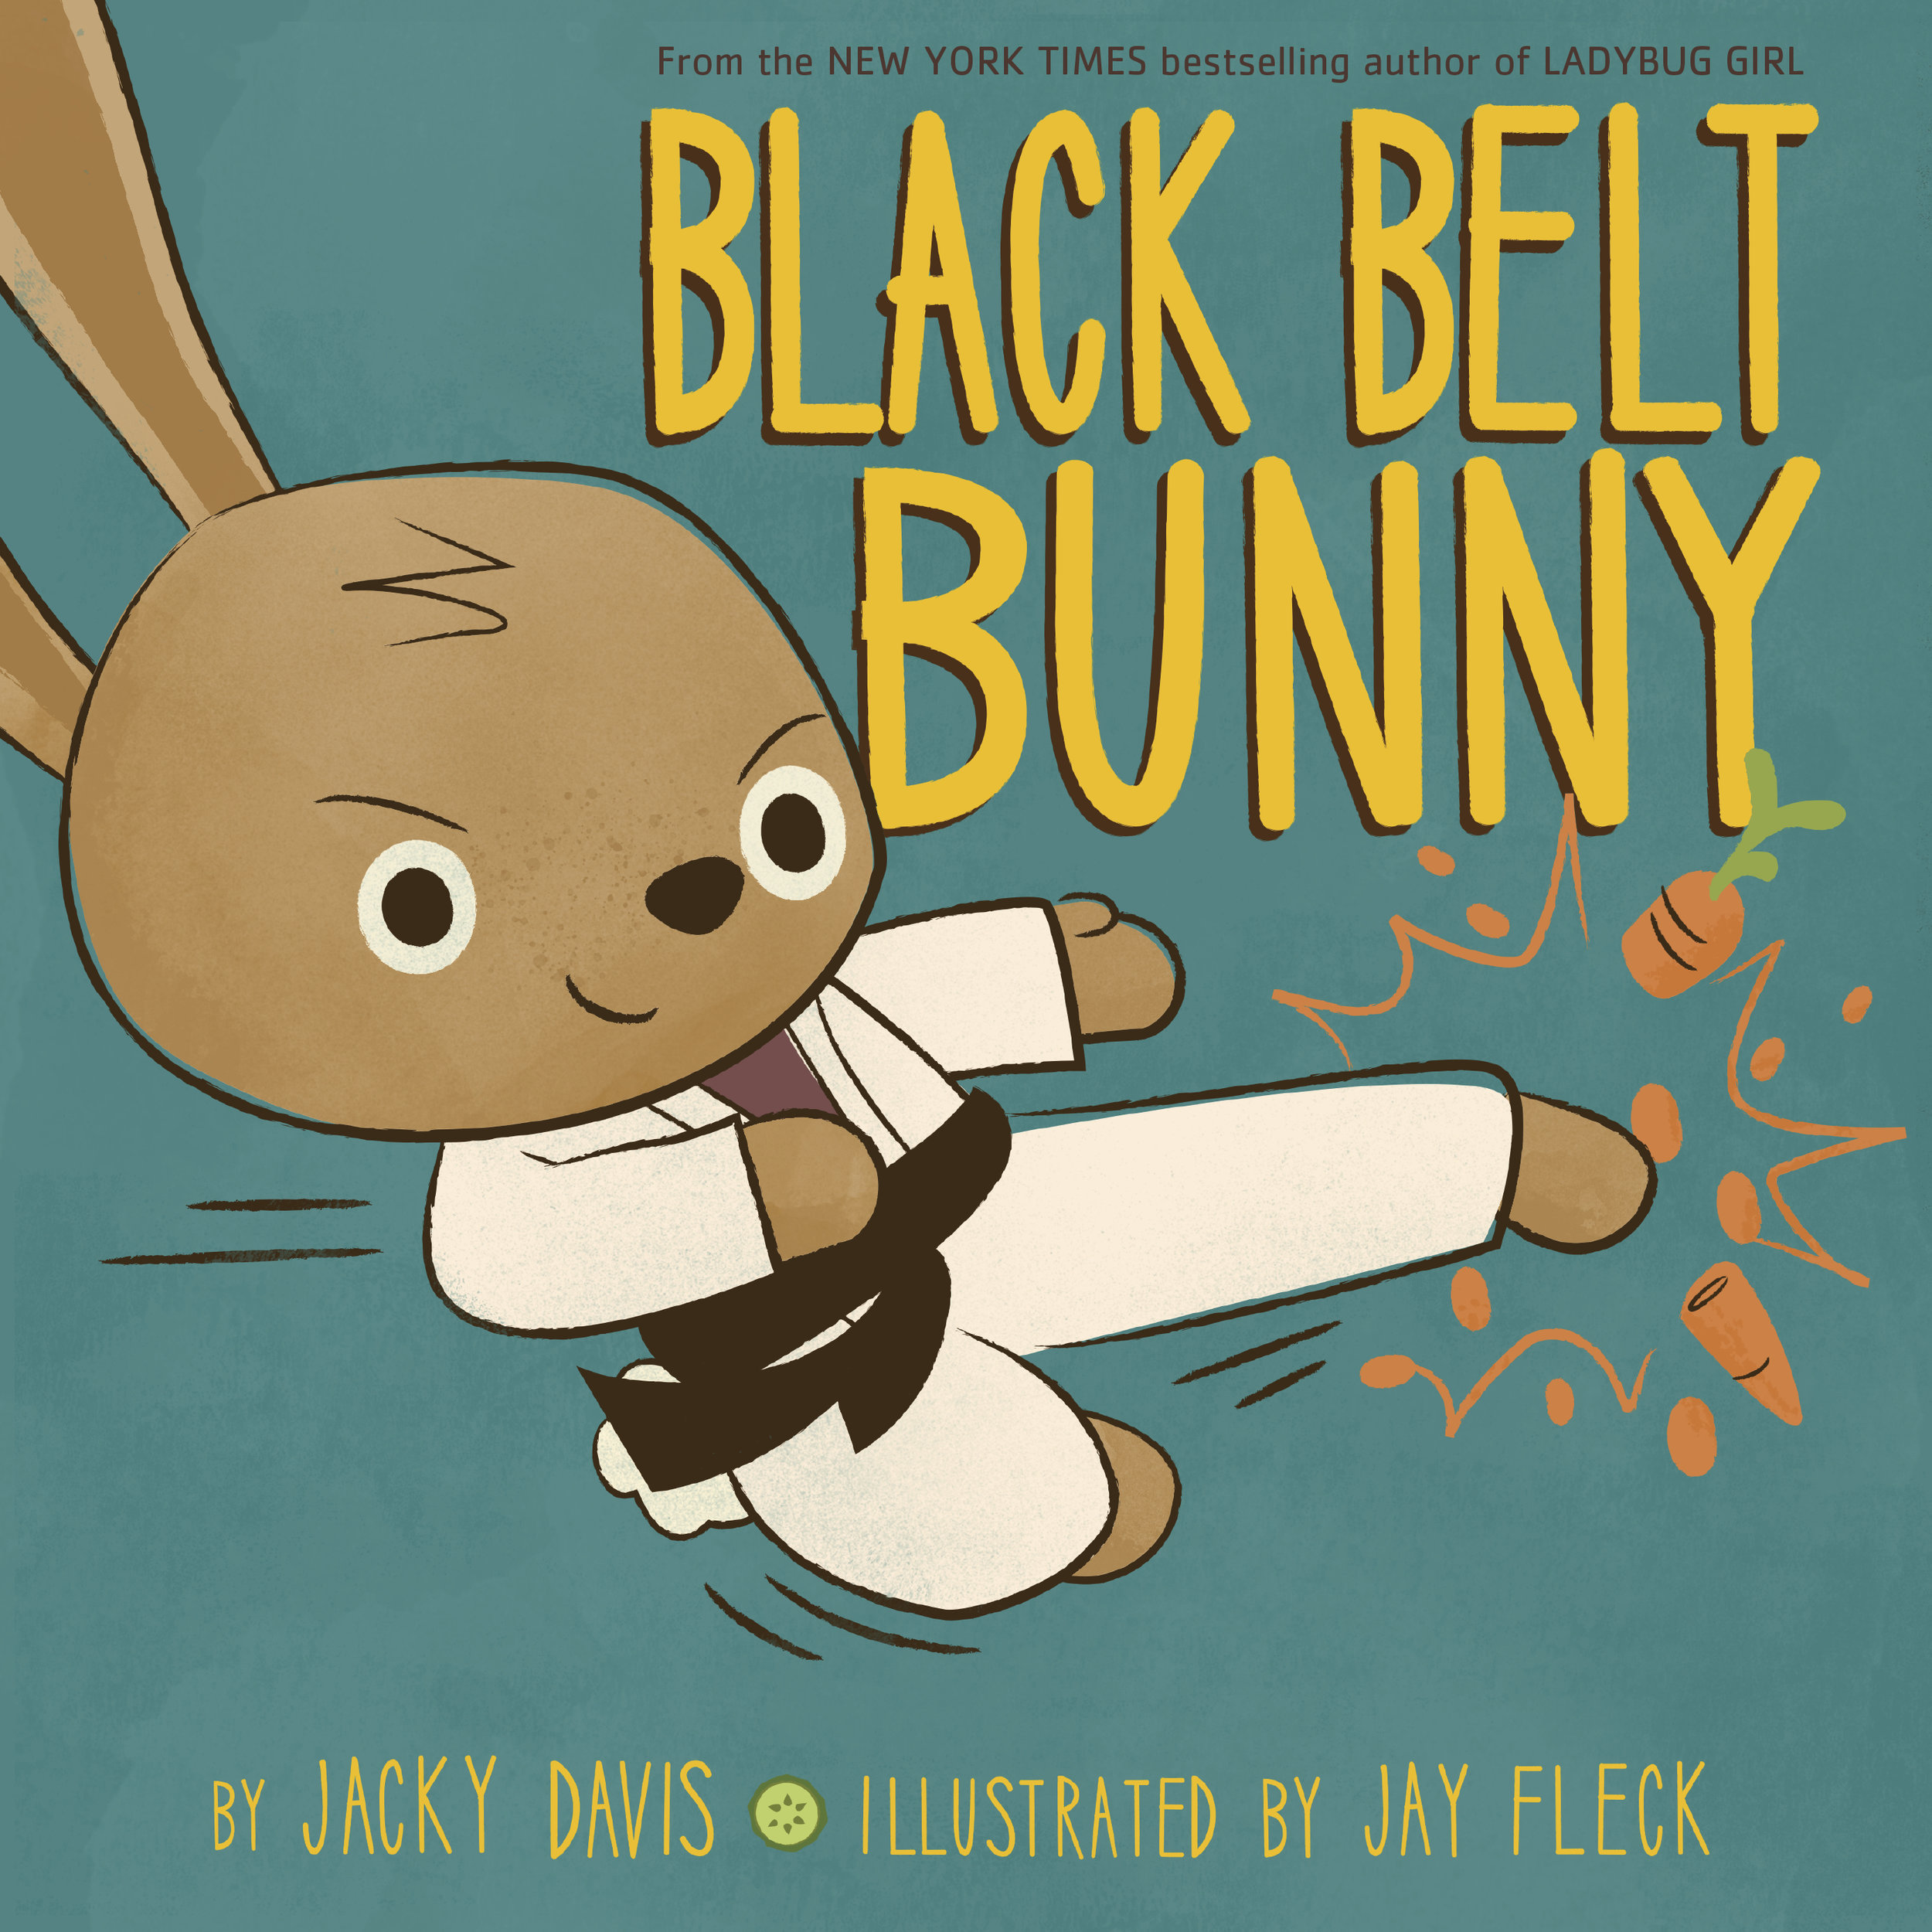 Black Belt Bunny - Black Belt Bunny is fast and strong and has seriously awesome moves—from front-kicks to back-flips to air-chops.READ MORE